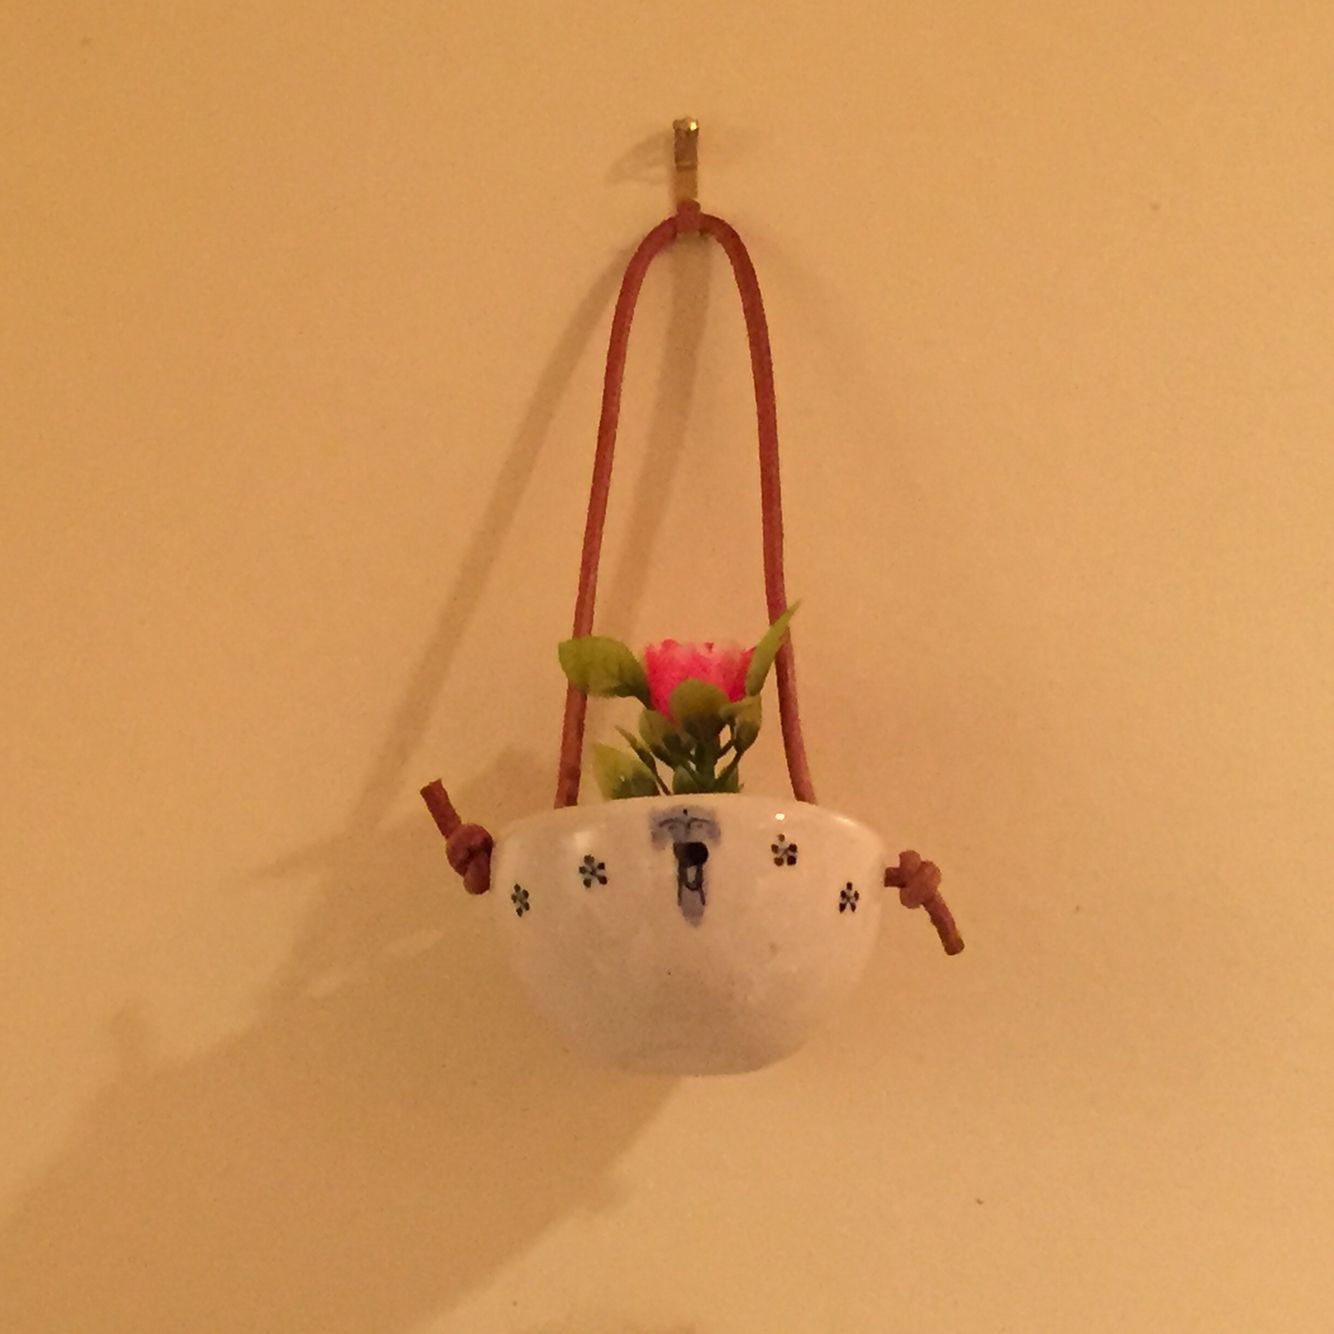 Japanese mini flower pot. Bought it in Tokyo 1.5 years ago and lost it in my suitcases. Rediscovered last night and loved its look on the wall!